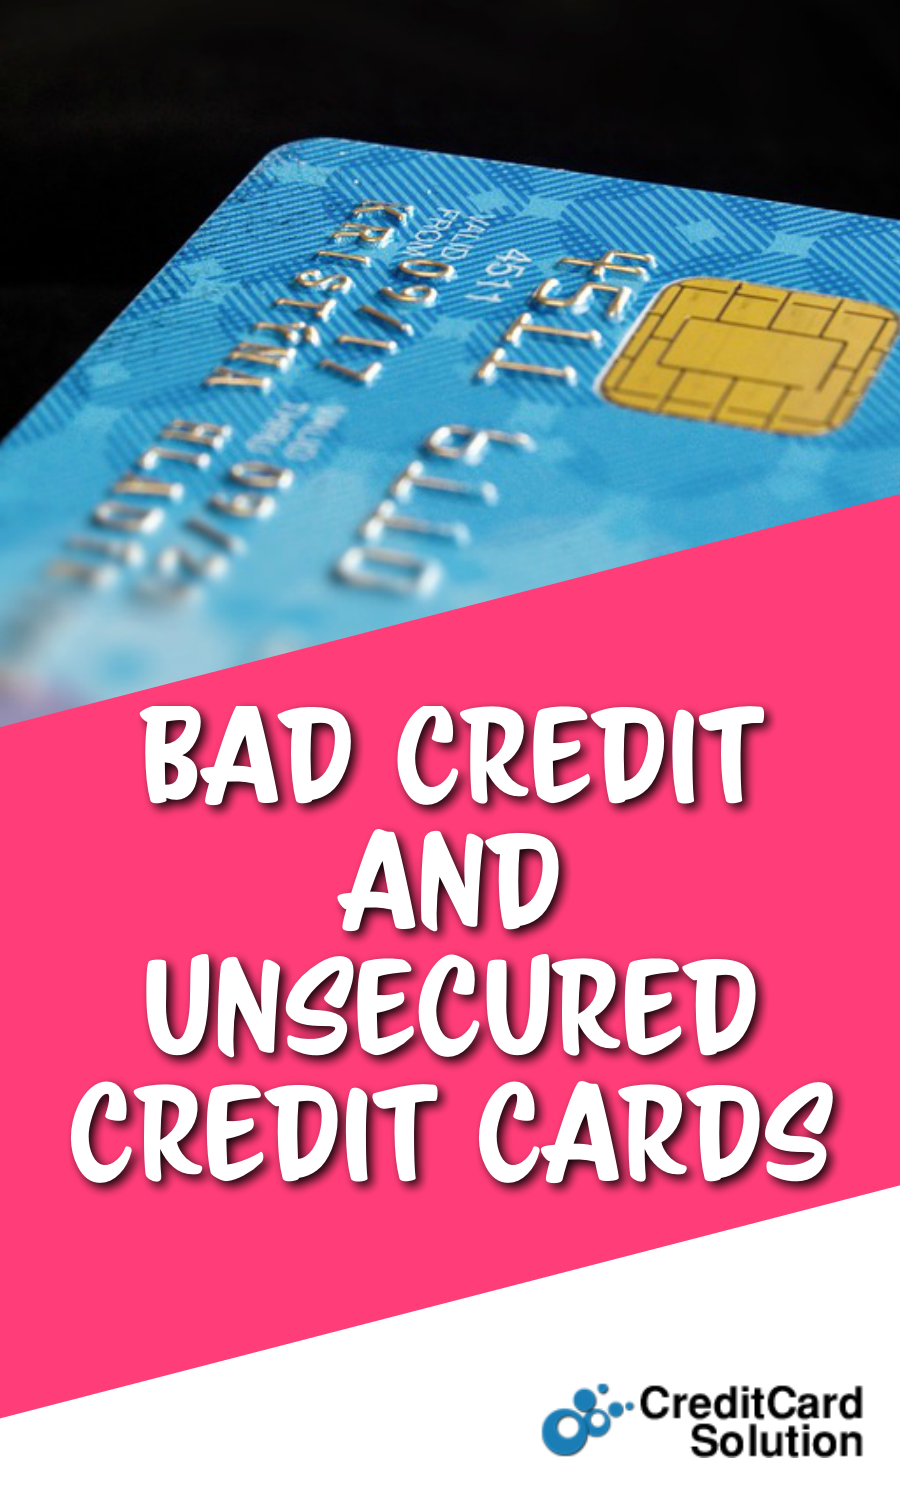 Bad Credit and Unsecured Credit Cards